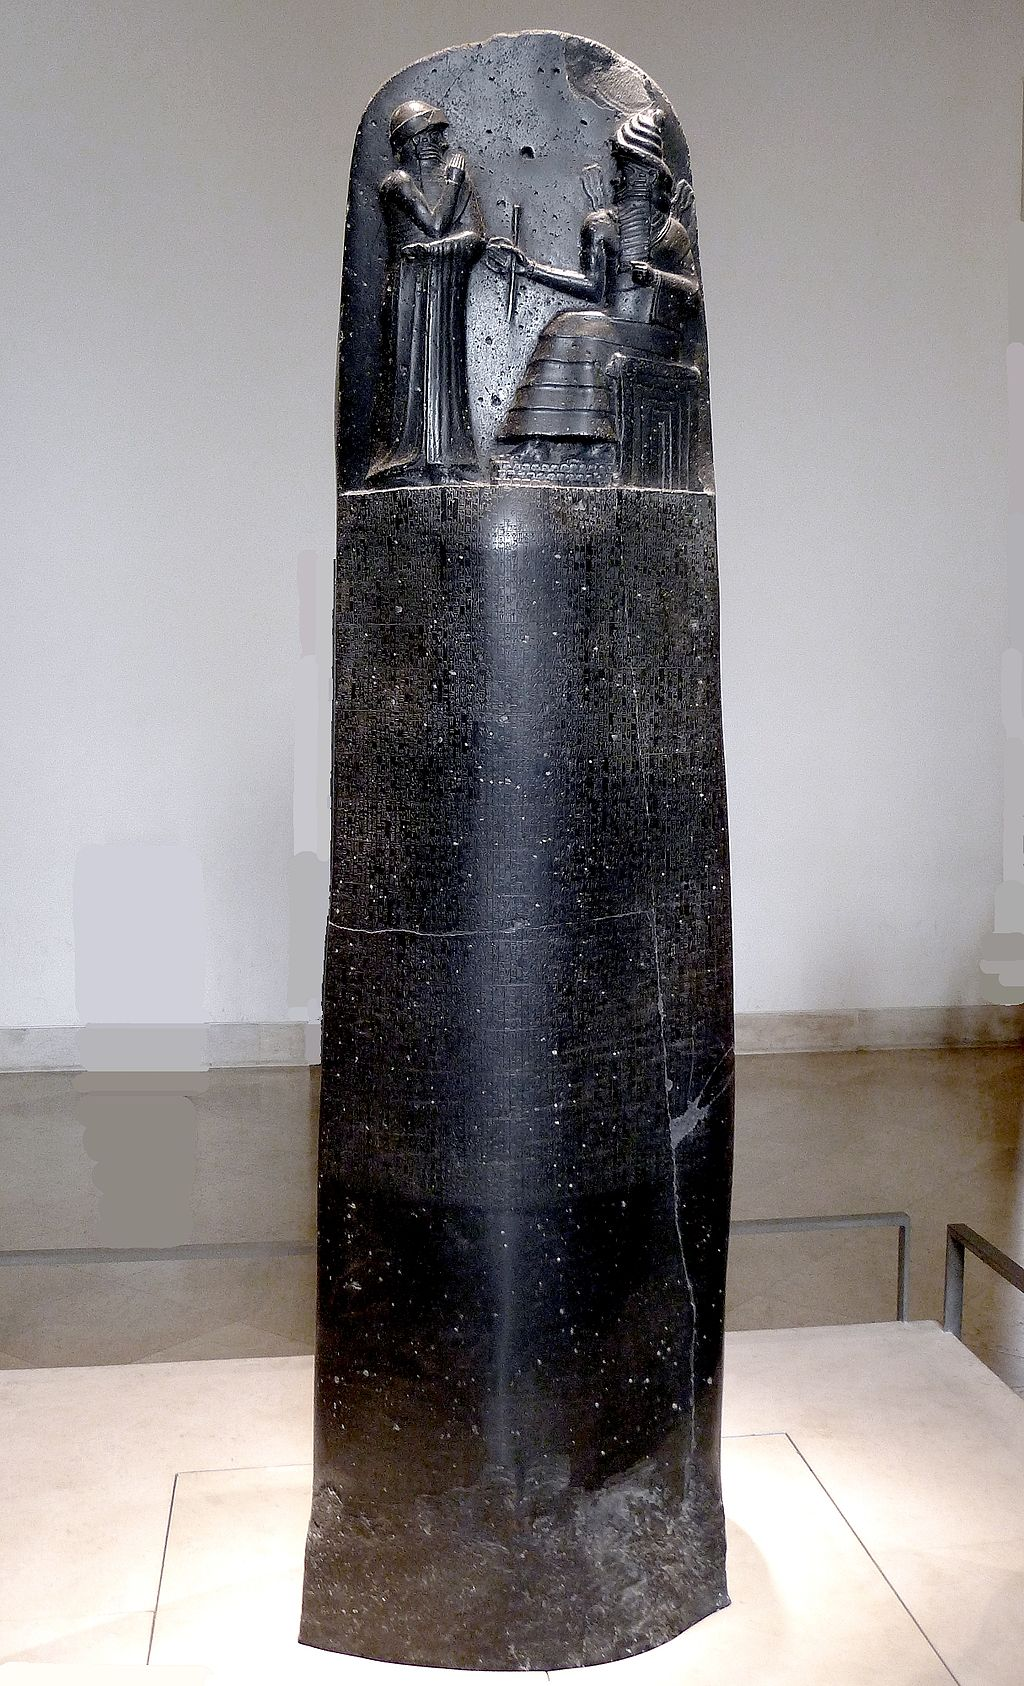 Law Code of Hammurabi